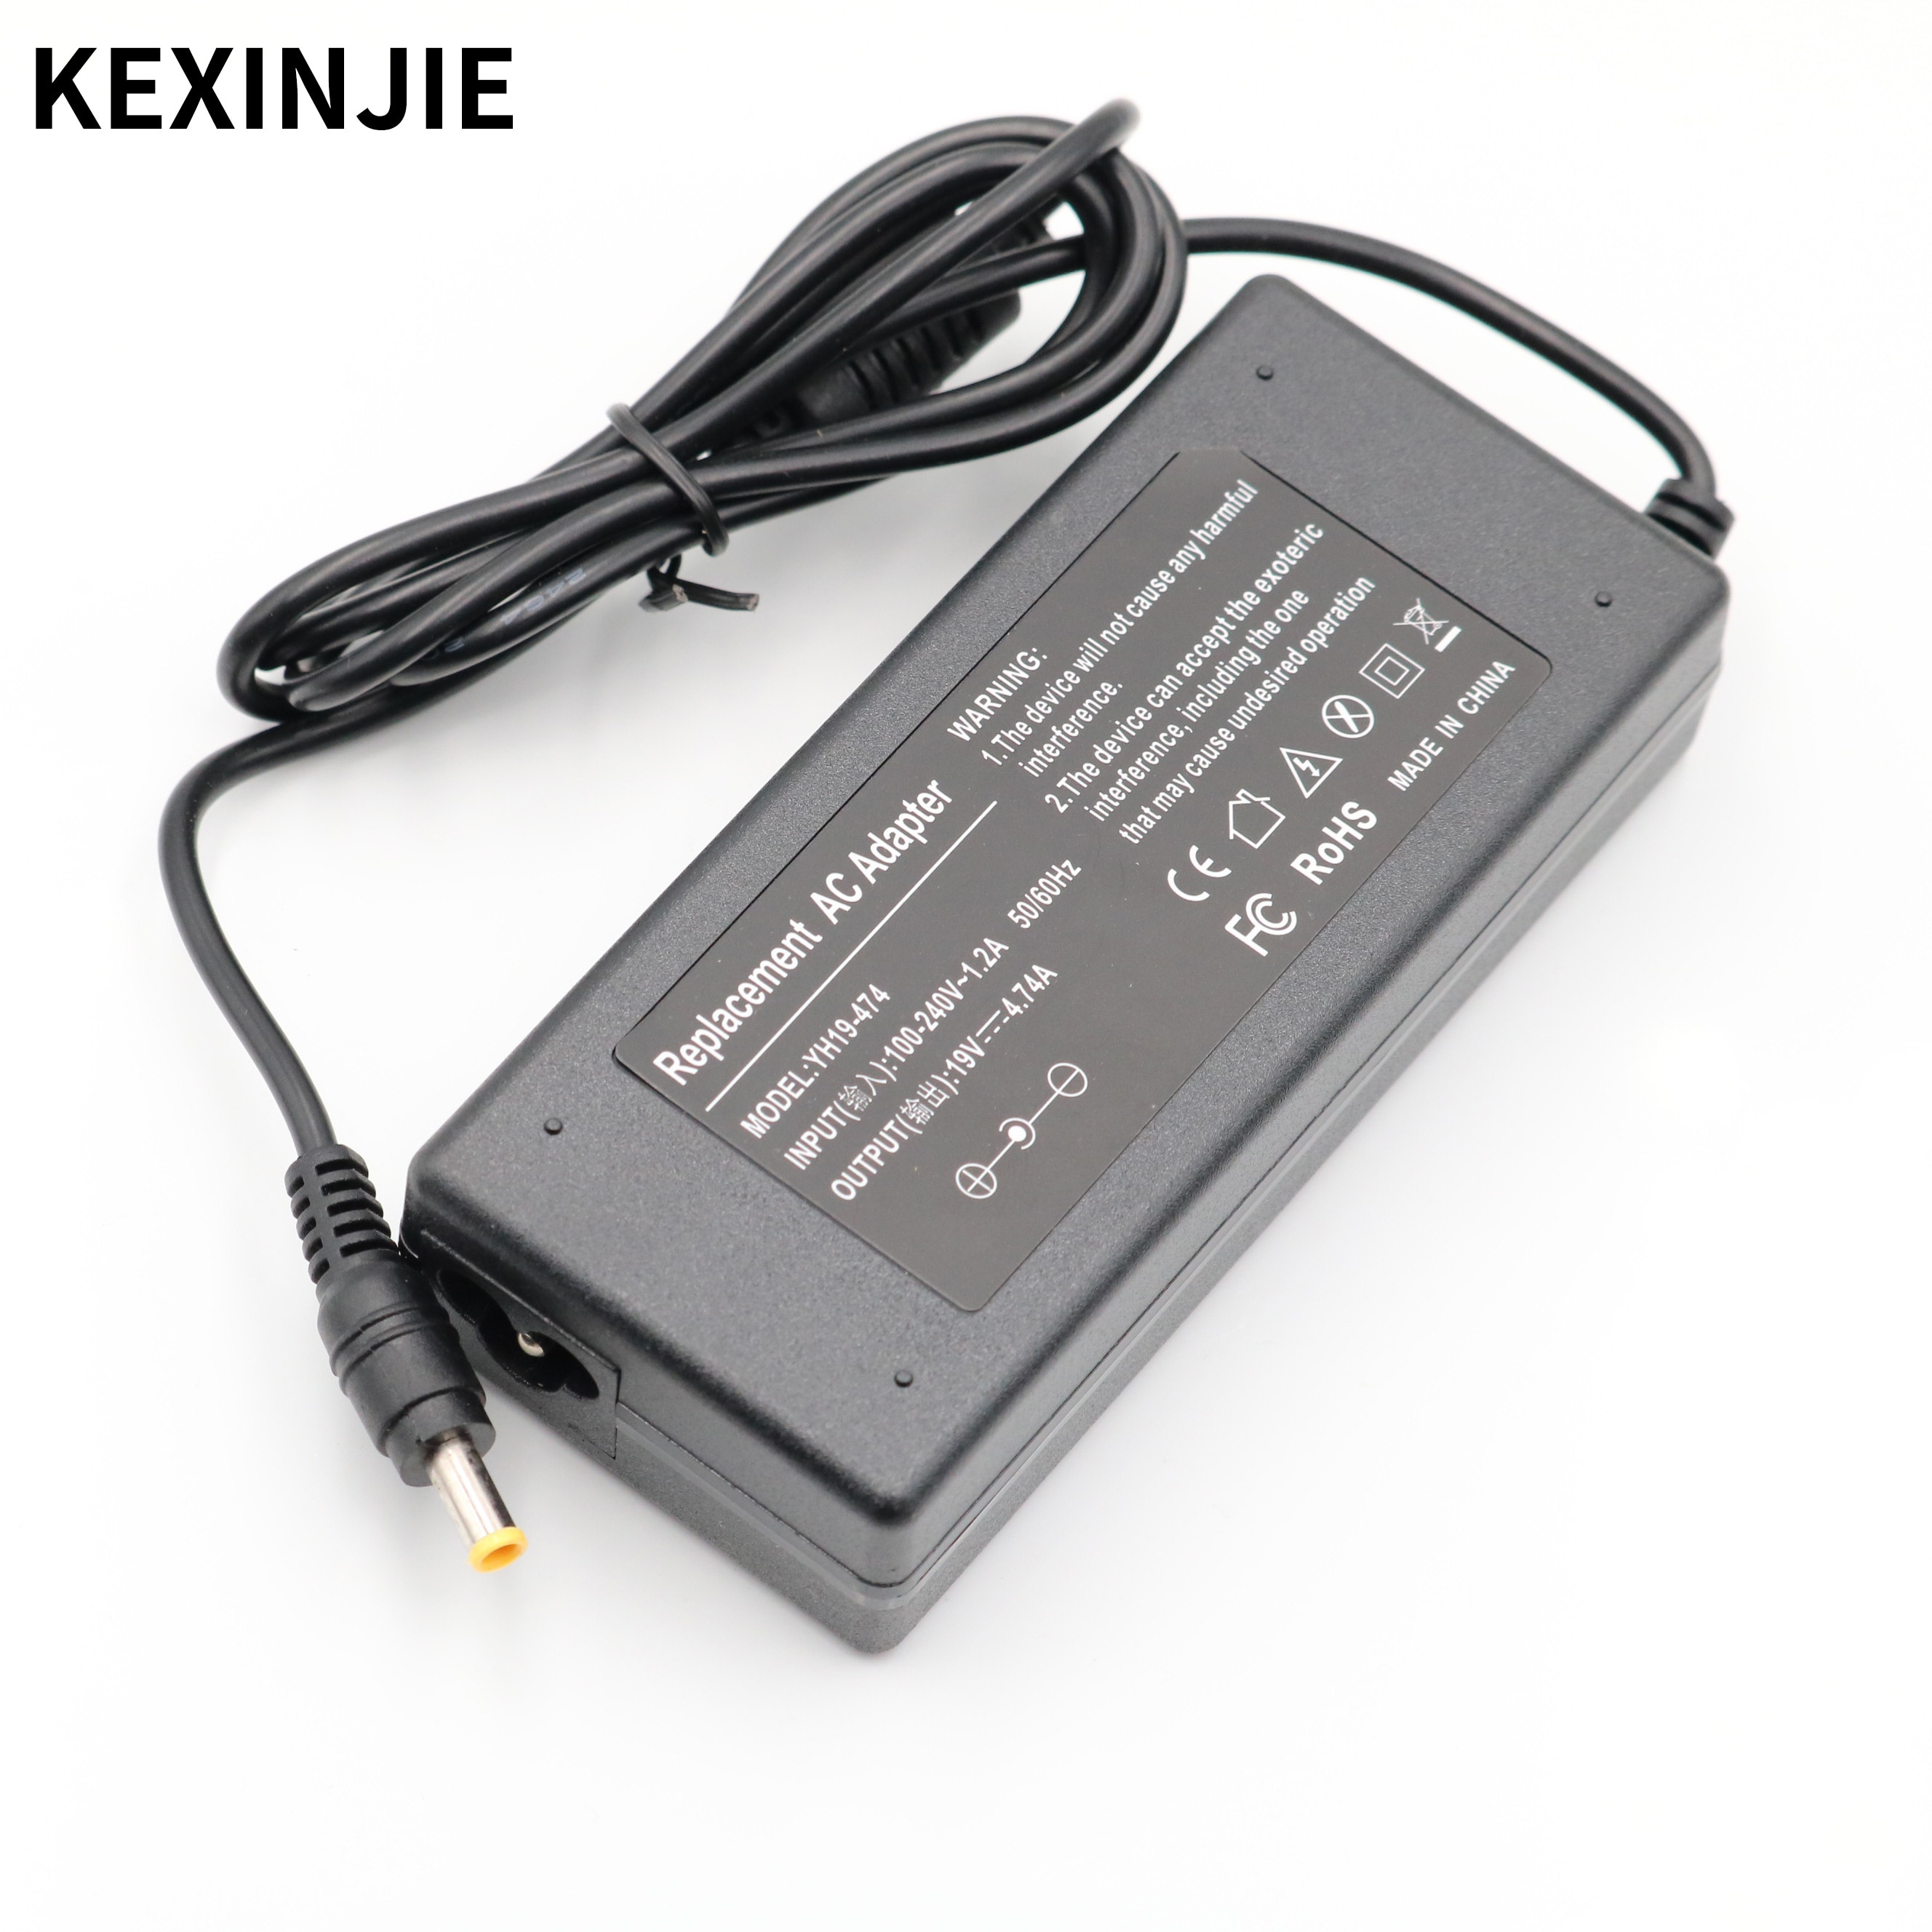 ac adapter charger power supply 19v 4 74a 5 5 3 0mm 90w for samsung laptop r453 r518 r410 r429 r439 r453 for notebook samsung AC Adapter Charger Power Supply 19V 4.74A 5.5*3.0mm 90W For Samsung Laptop R453 R518 R410 R429 R439 R453 For Notebook Samsung